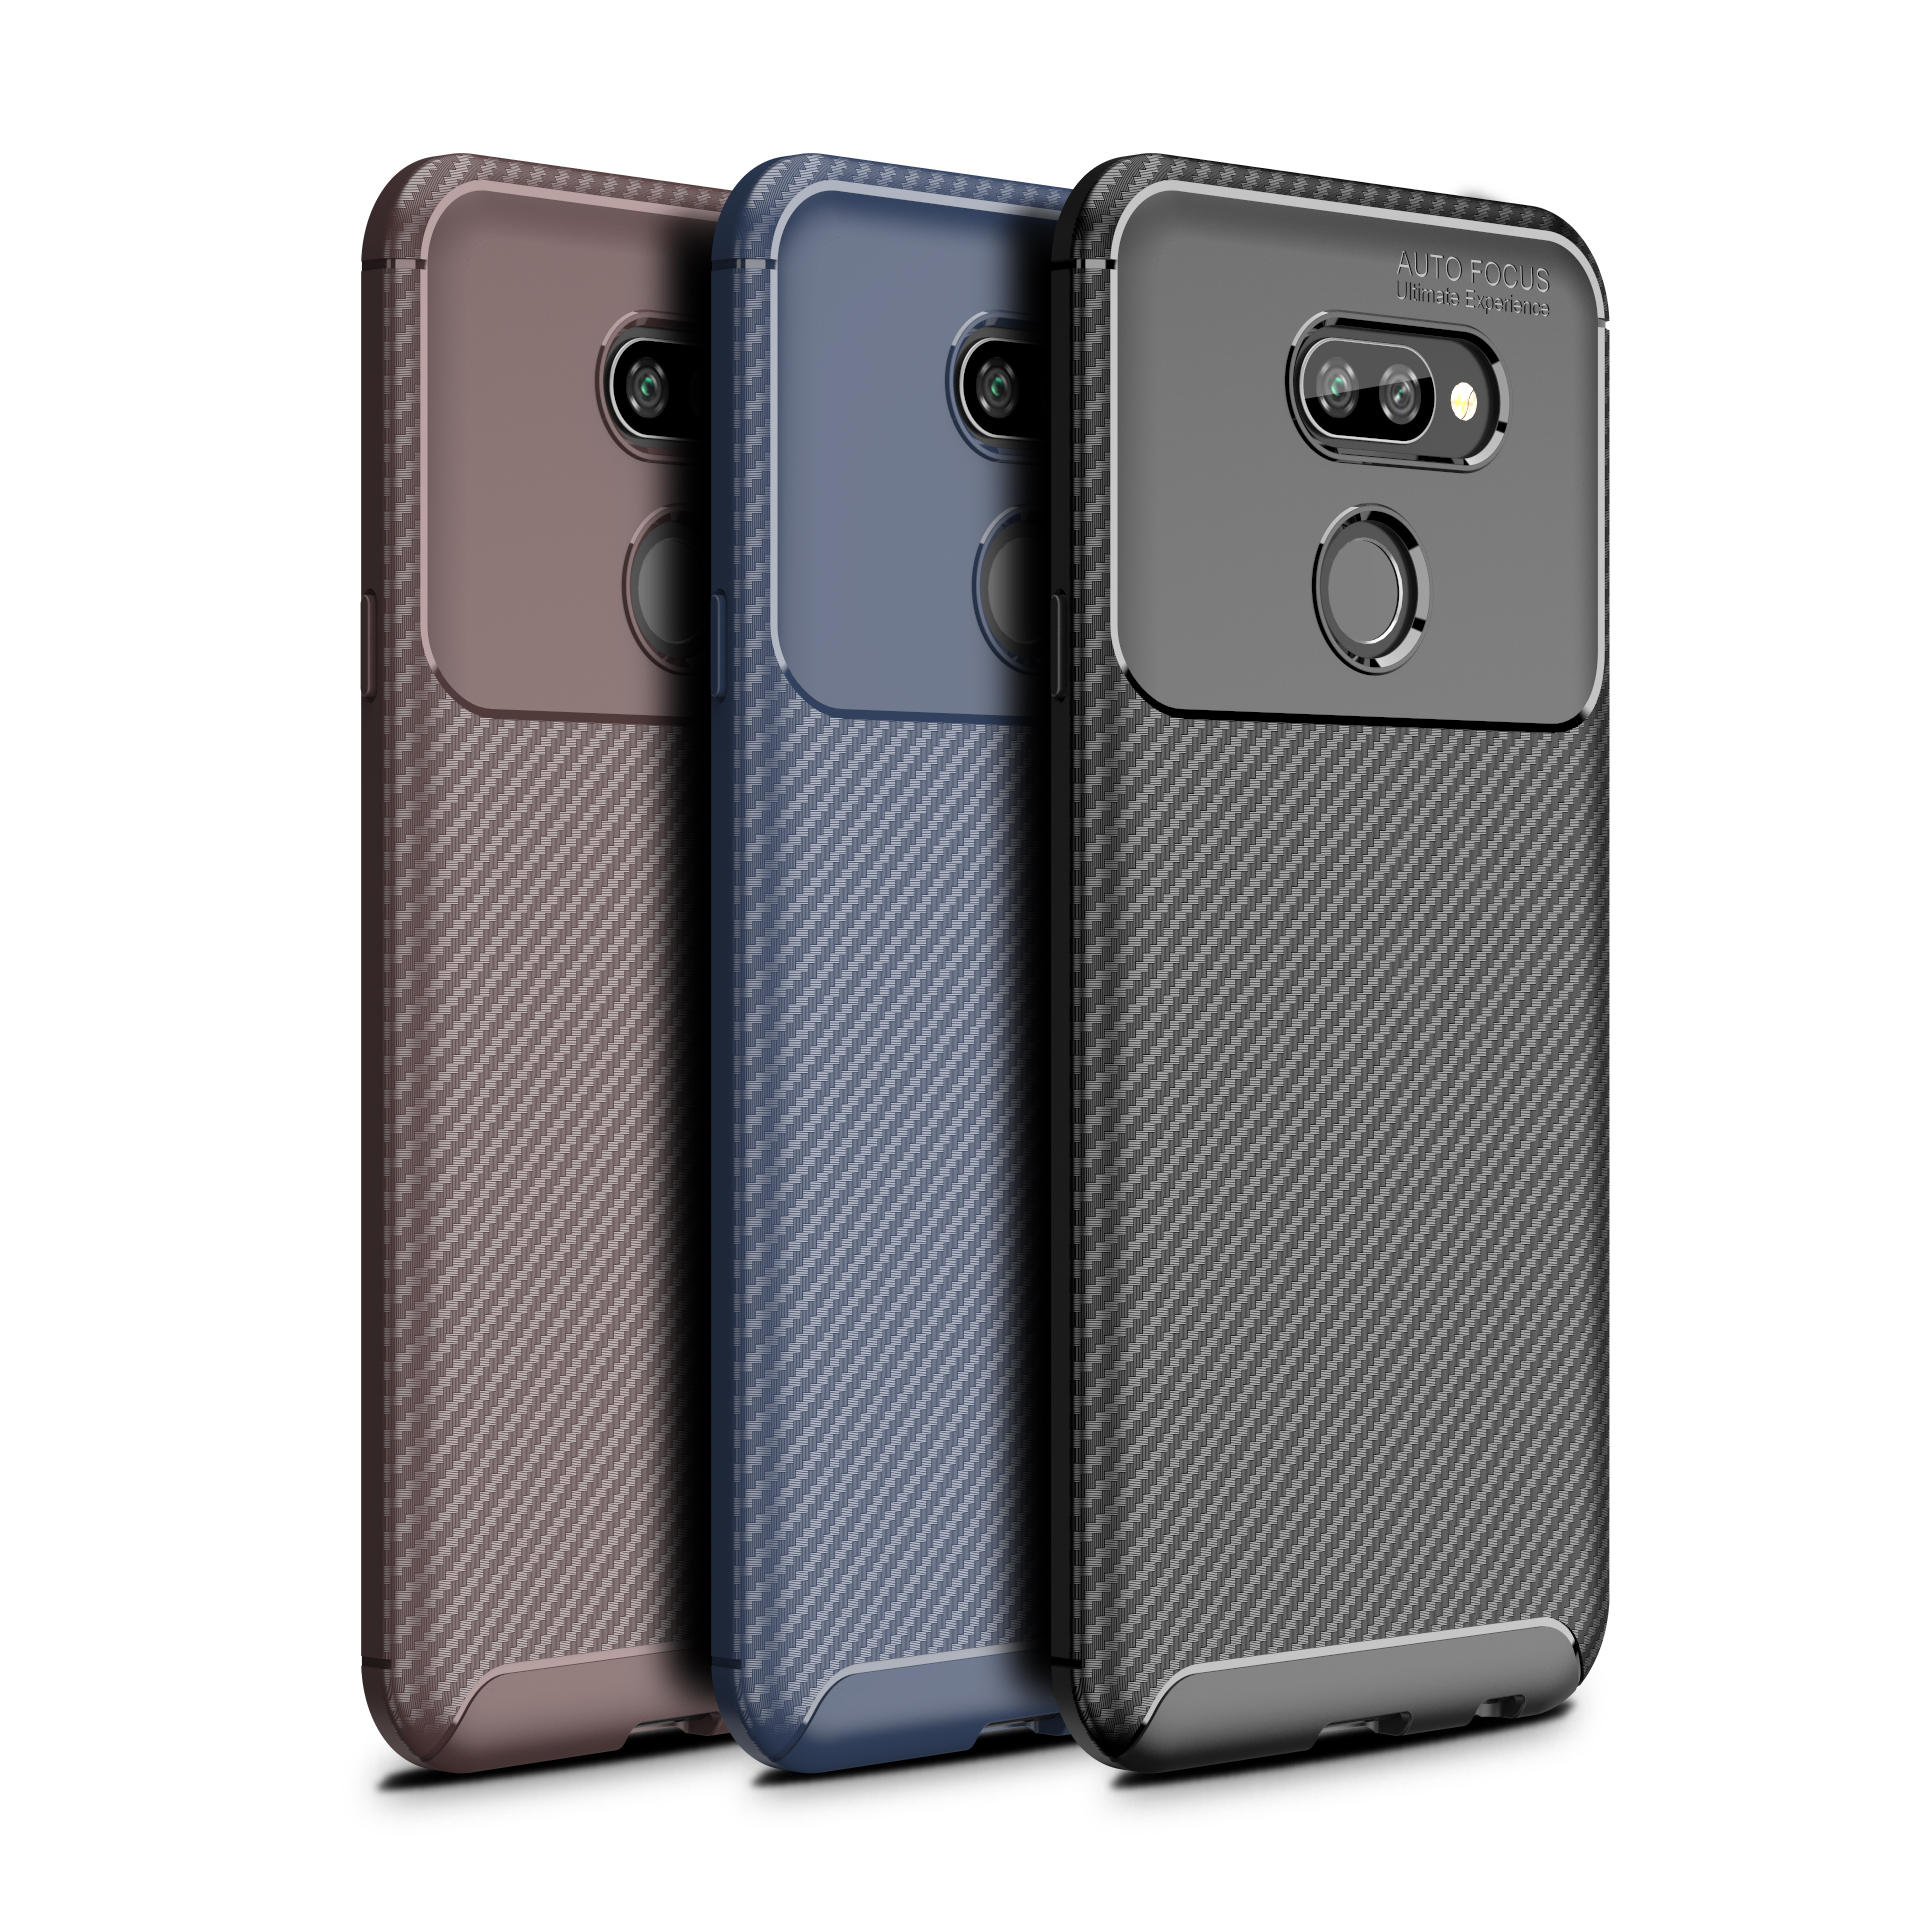 Anti-scratch Carbon Fiber Texture TPU Silicone Soft Silicone <strong>Phone</strong> Case For LG Q70